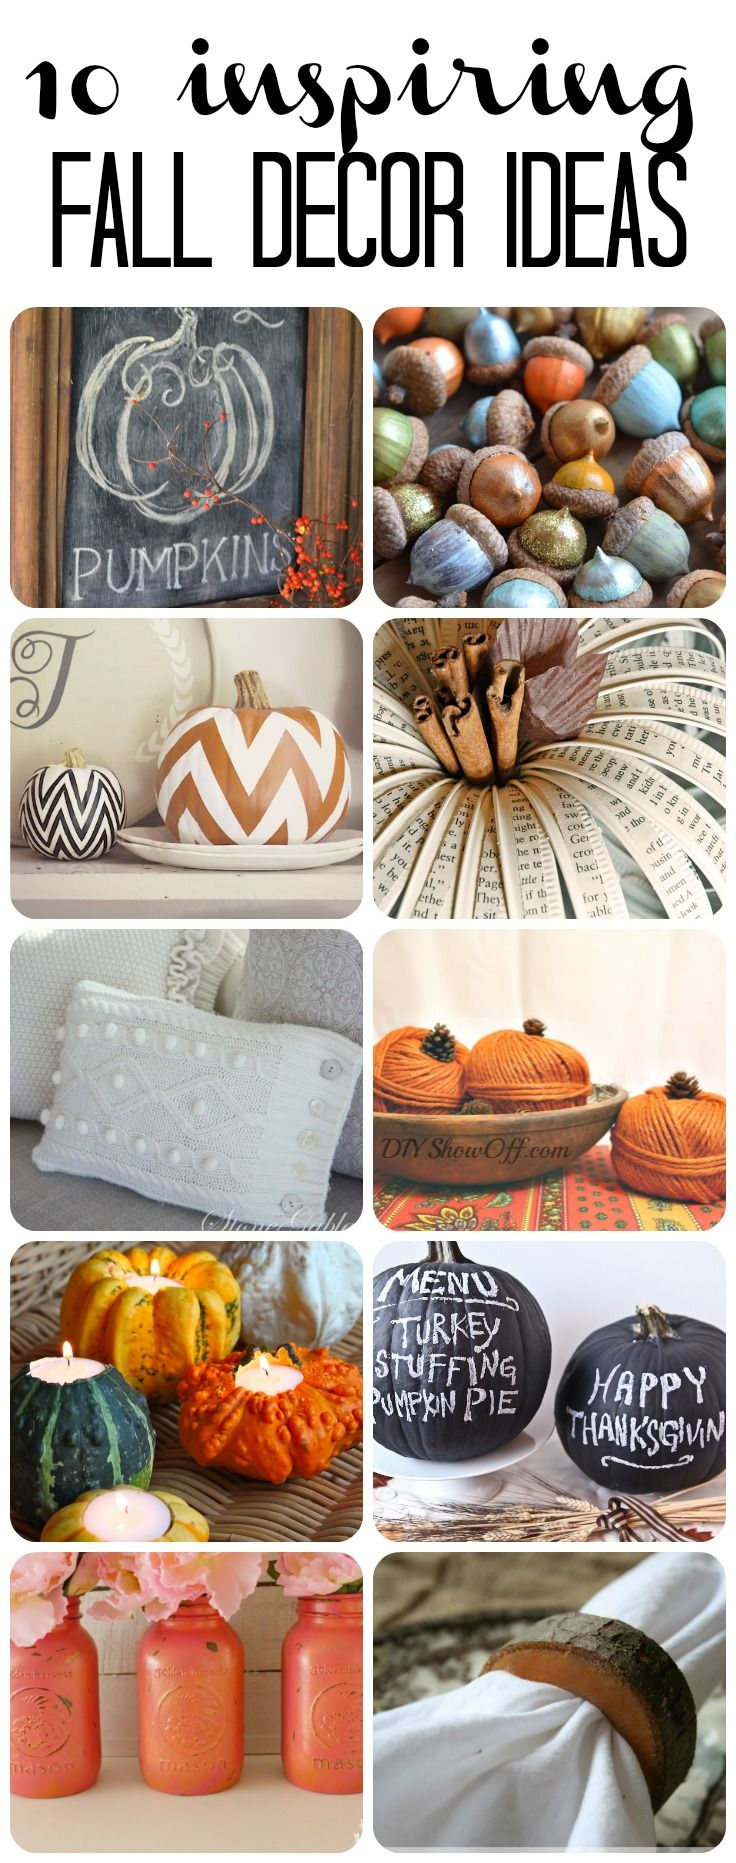 10 Inspiring DIY Fall Decor Ideas! #falldecor